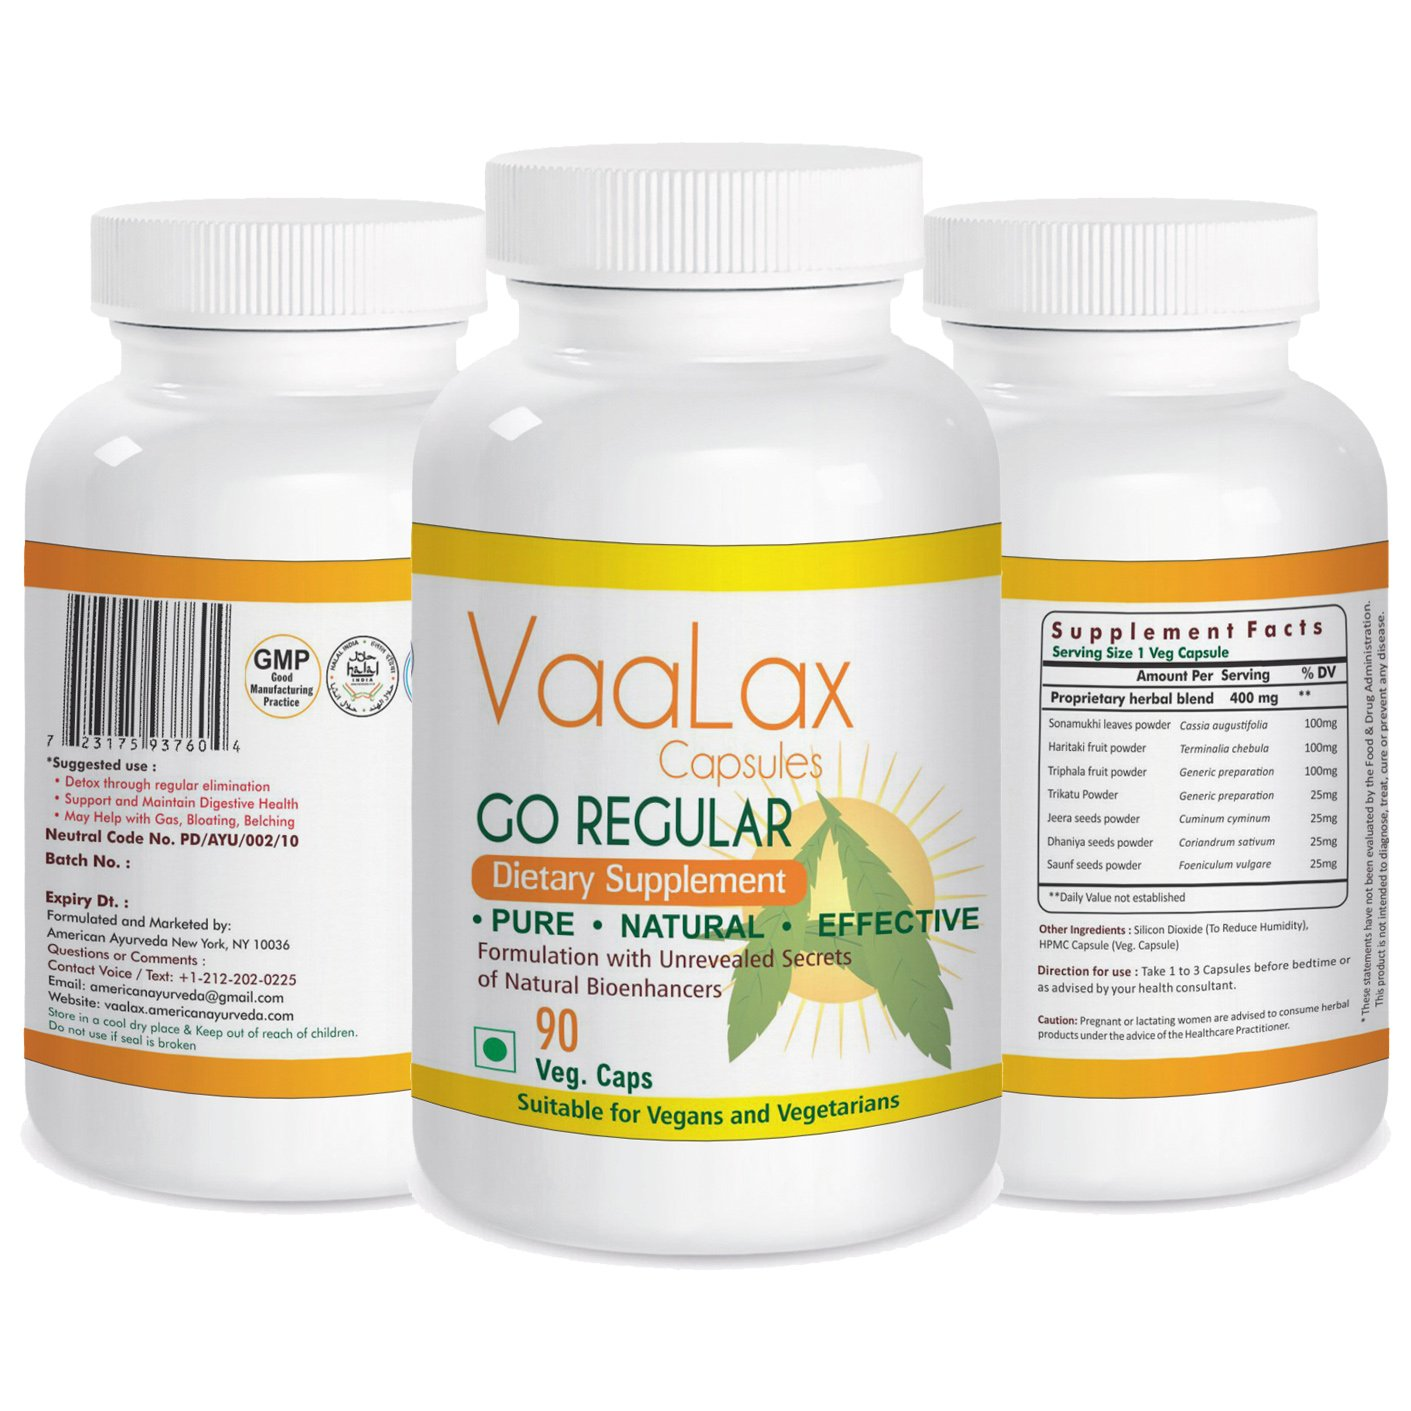 VaaLax Capsules Laxative Herbal Supplement for Regularity, Natural Colon Cleanse Detox, Supports Weight Loss Digestive Health. Gentle but Highly Effective Formula by American Ayurveda